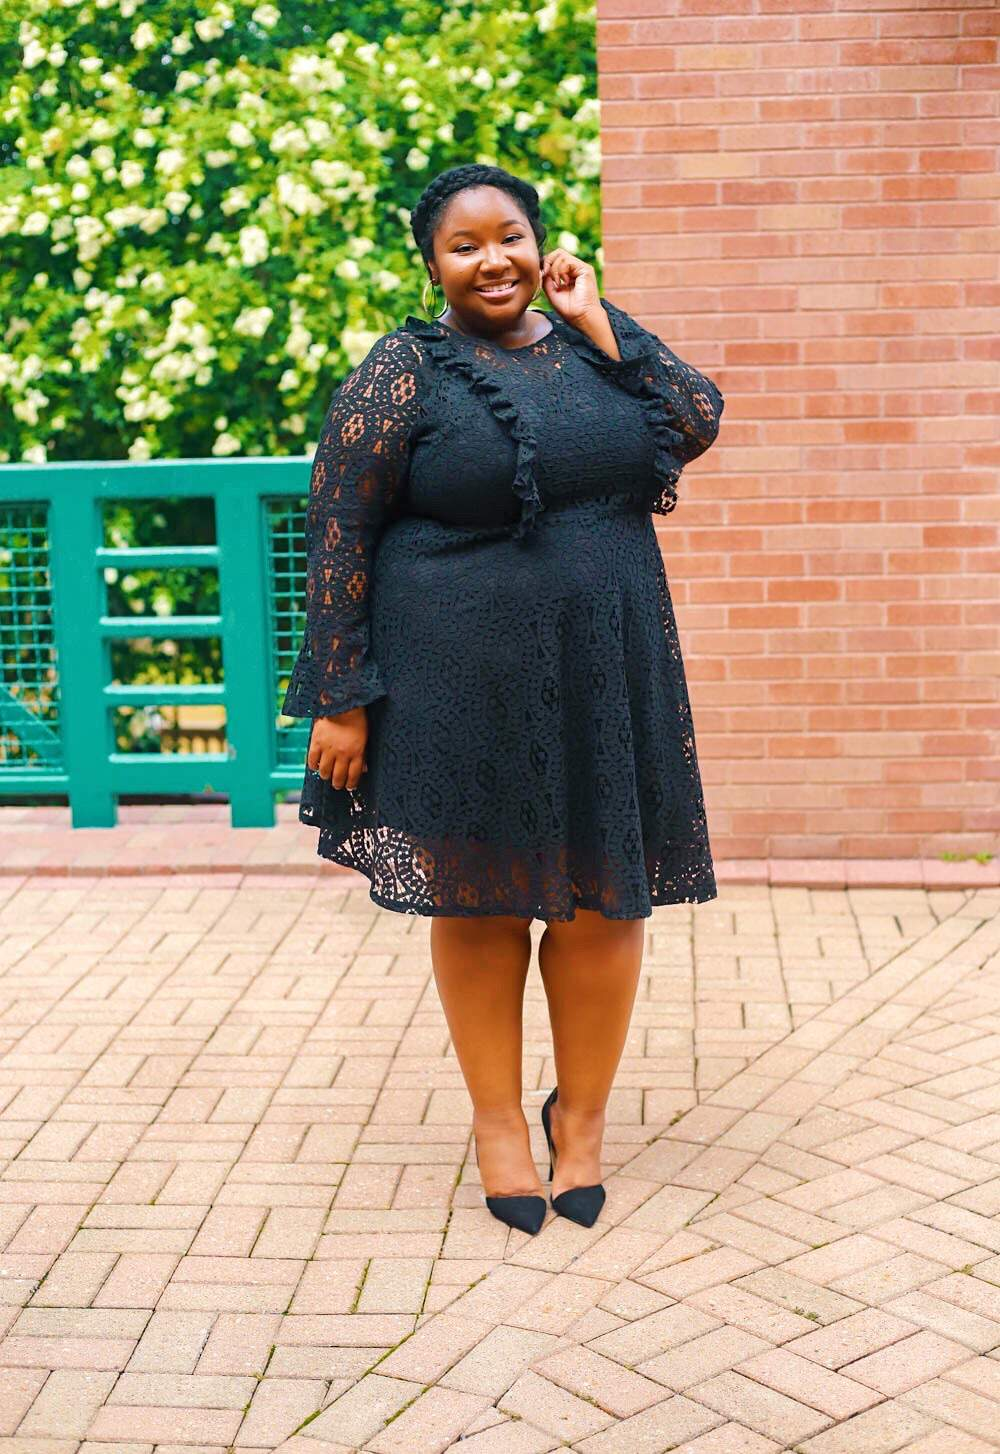 Plus Size Blogger Spotlight- Ashley of From Head To Curve